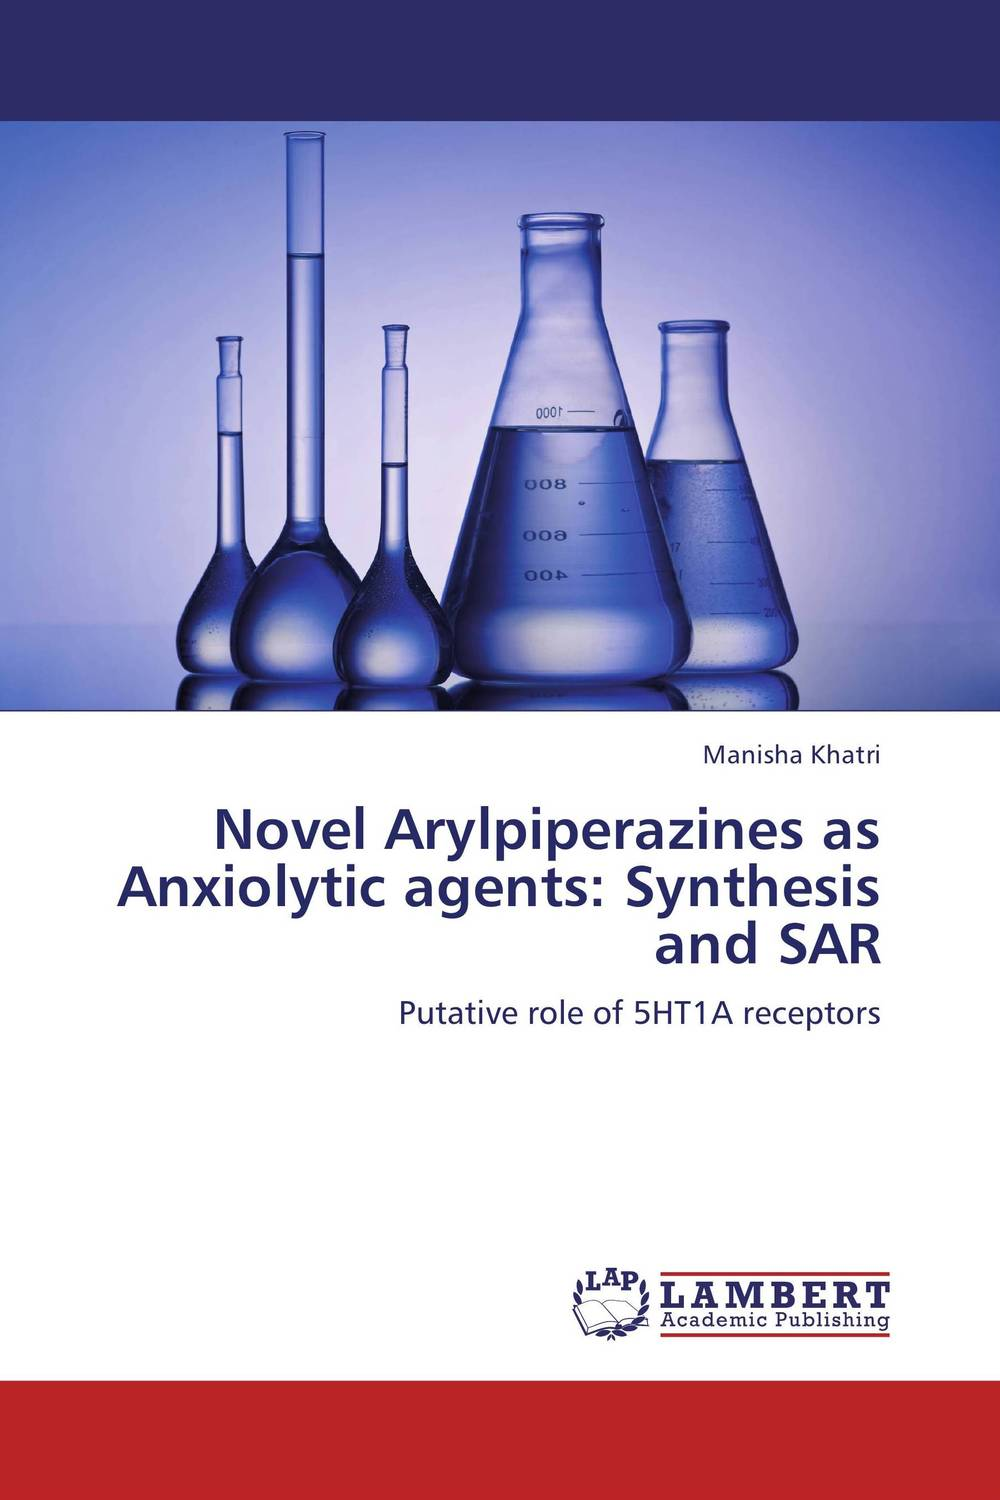 Novel Arylpiperazines as Anxiolytic agents: Synthesis and SAR magnitude and ranking of psychiatric disorders in lahore pakistan